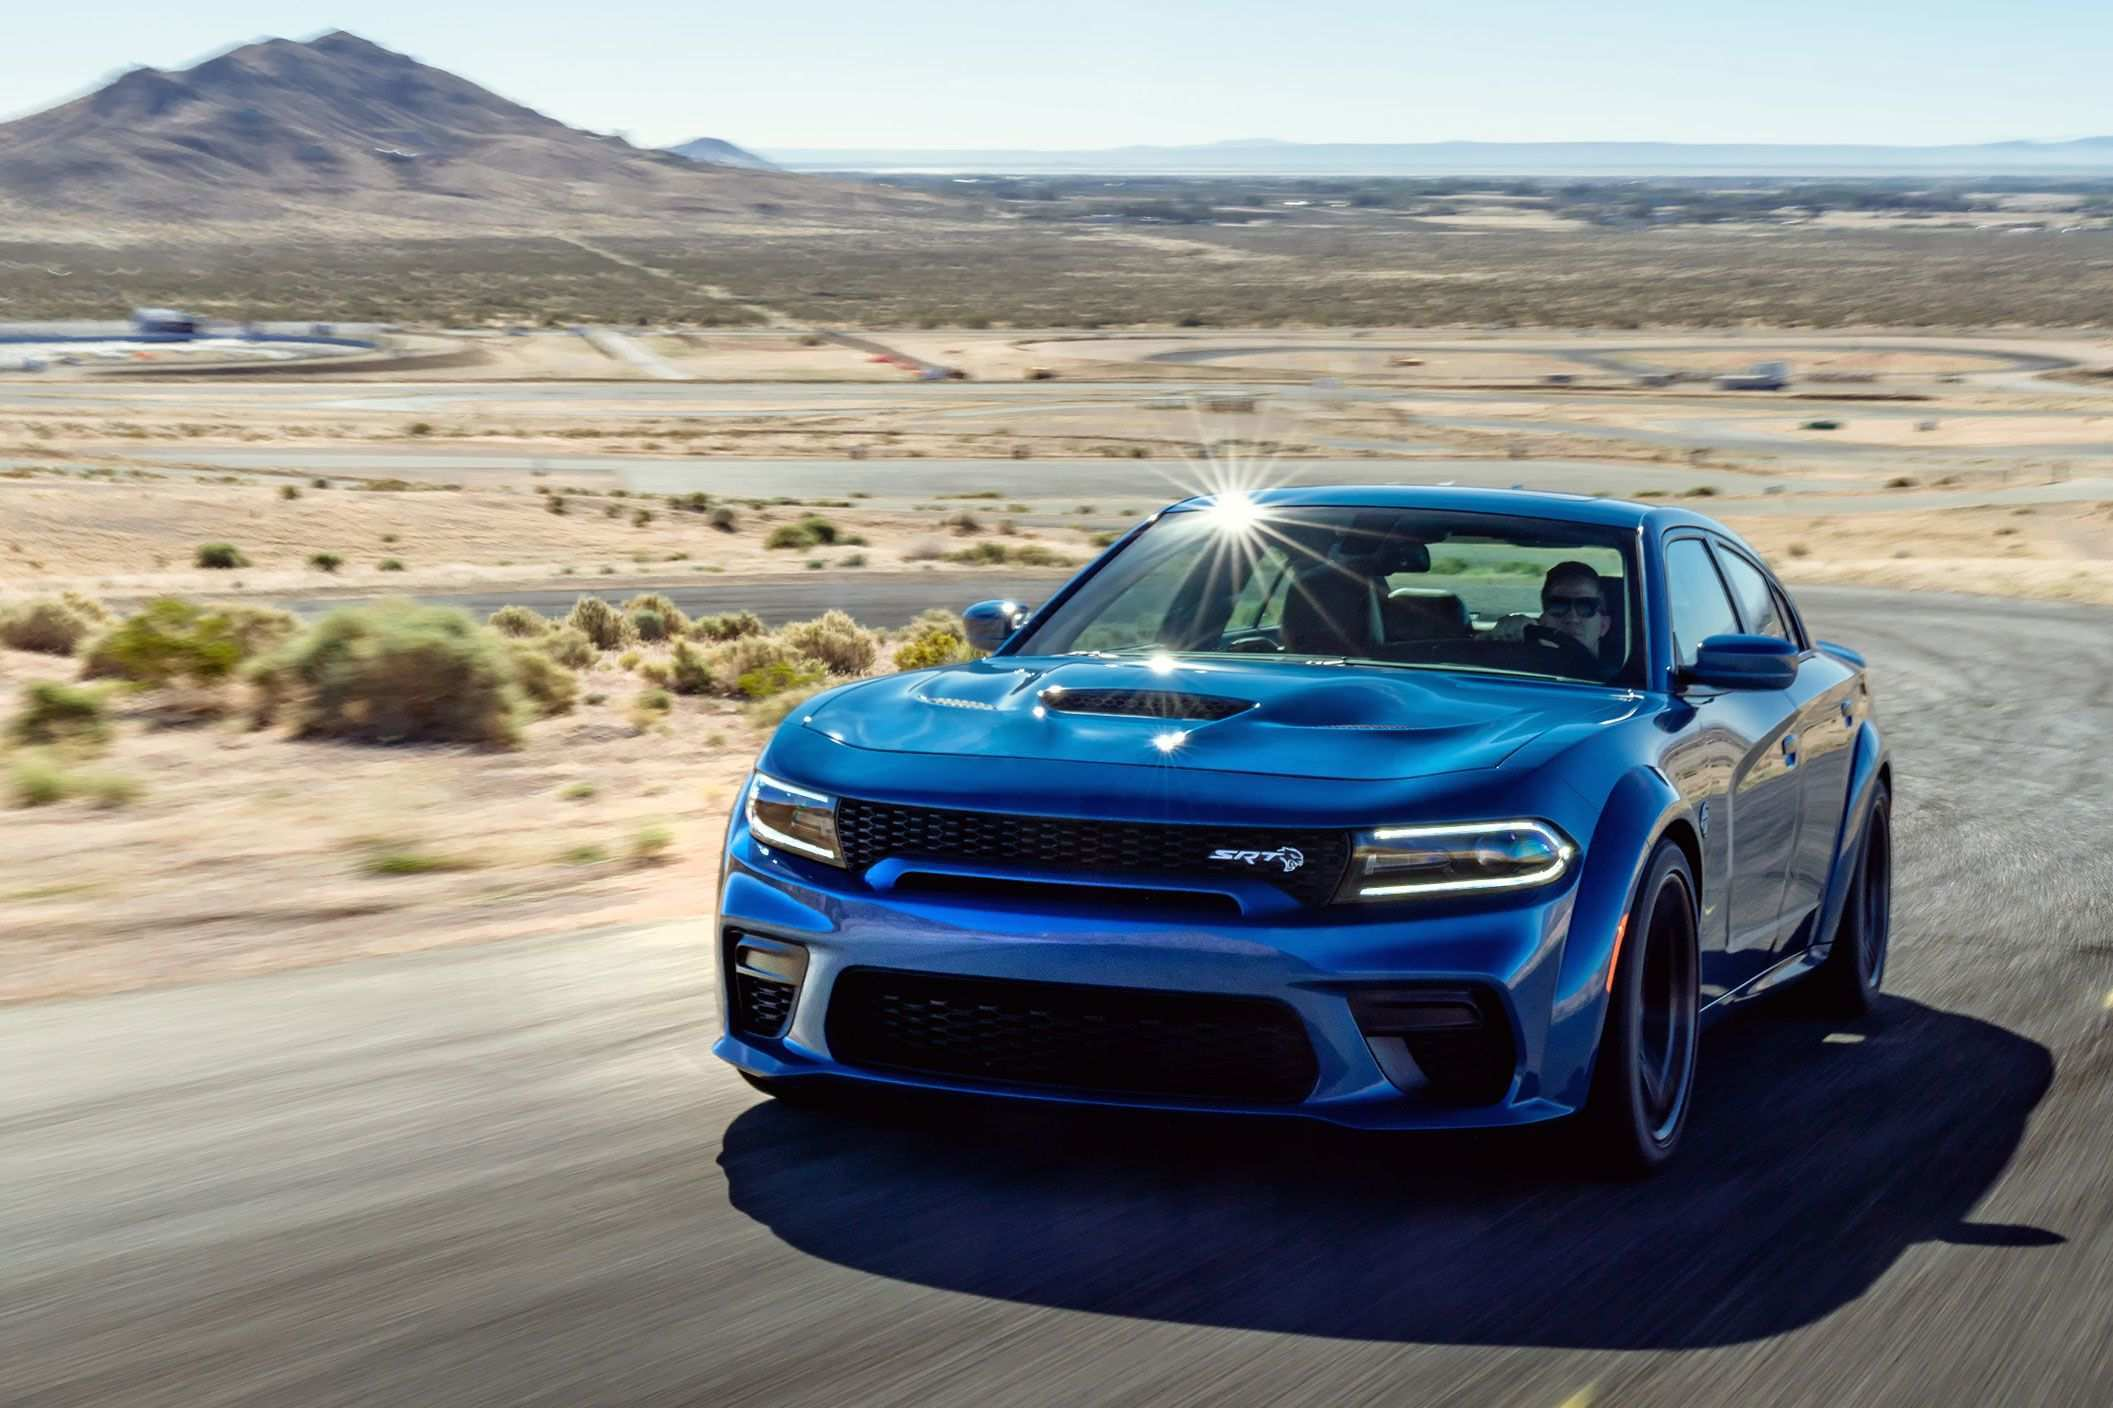 75 All New 2020 Dodge Charger Srt Price Design And Review